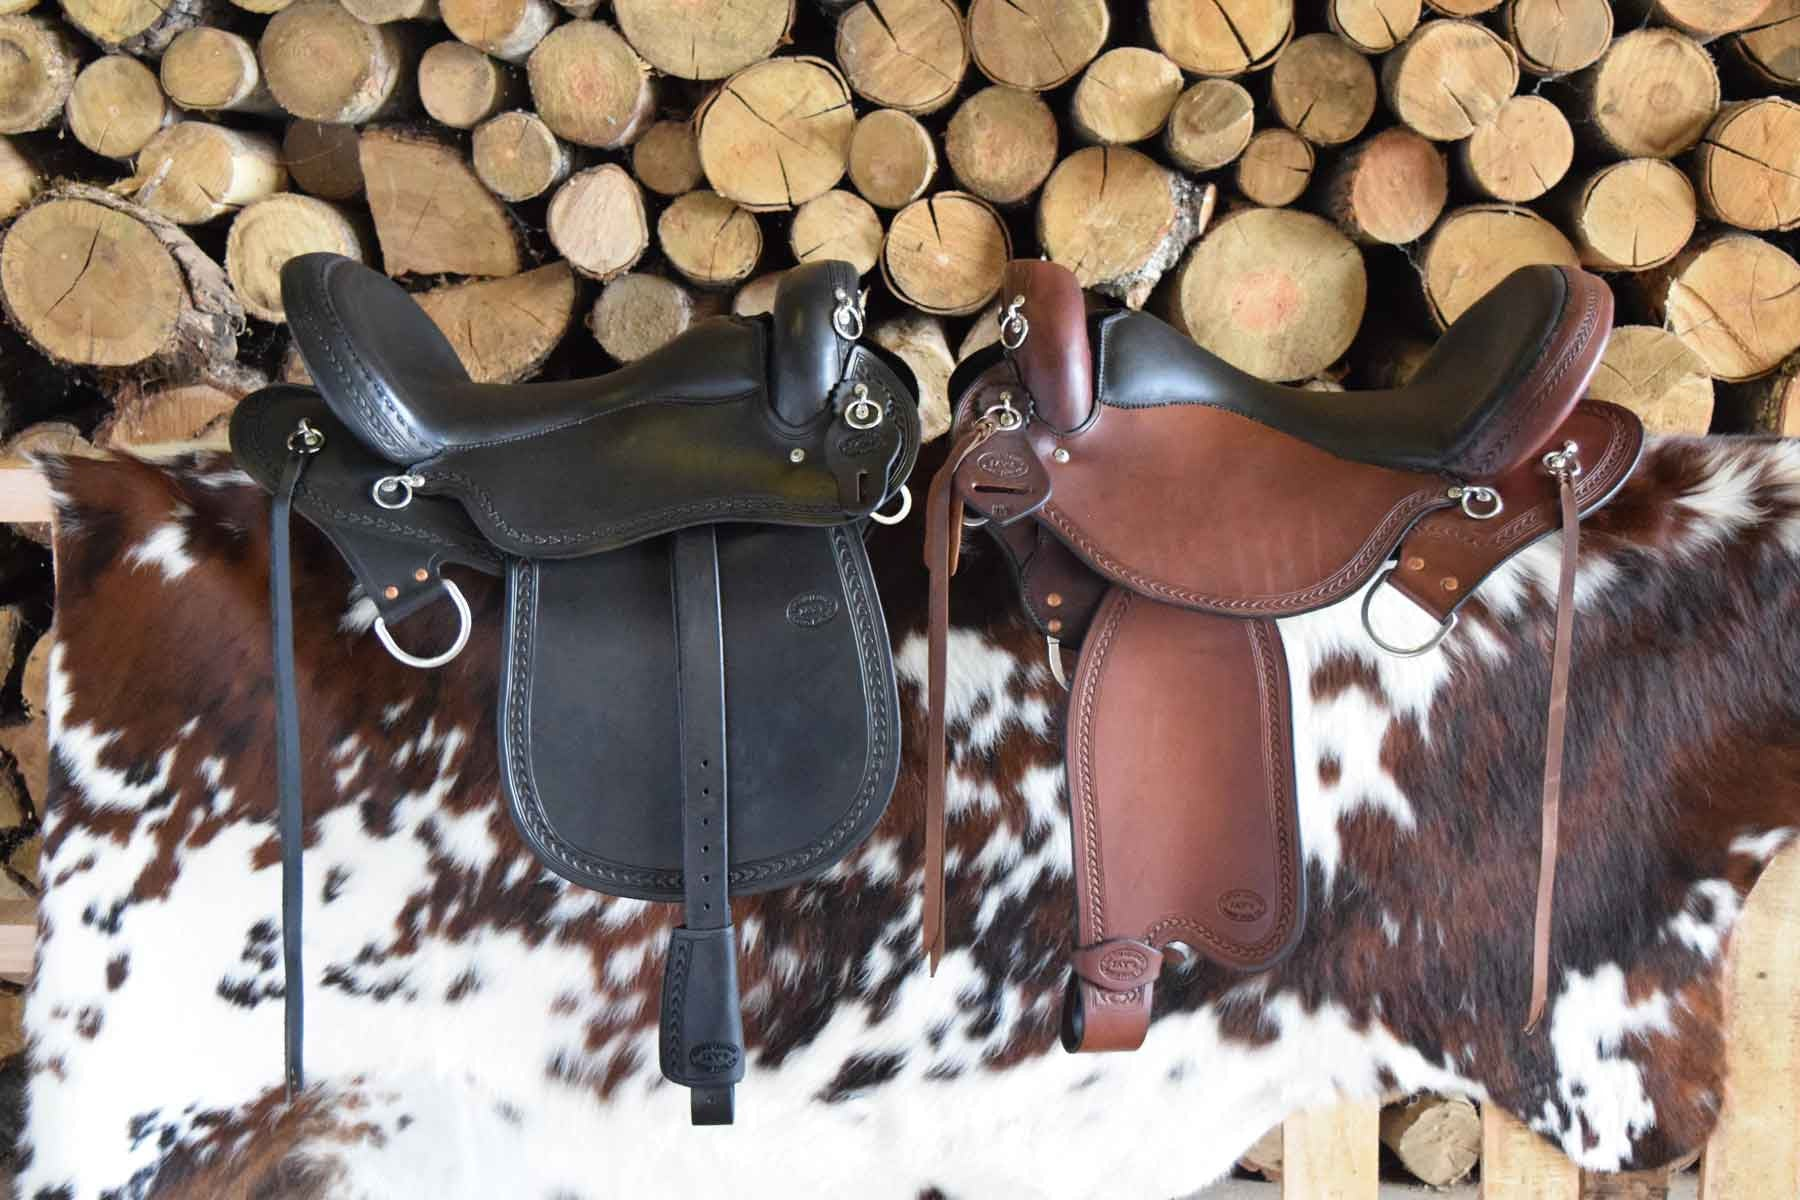 Two custom leather Trail Lite /Endurance Saddles by Jay's Saddles in Tennessee